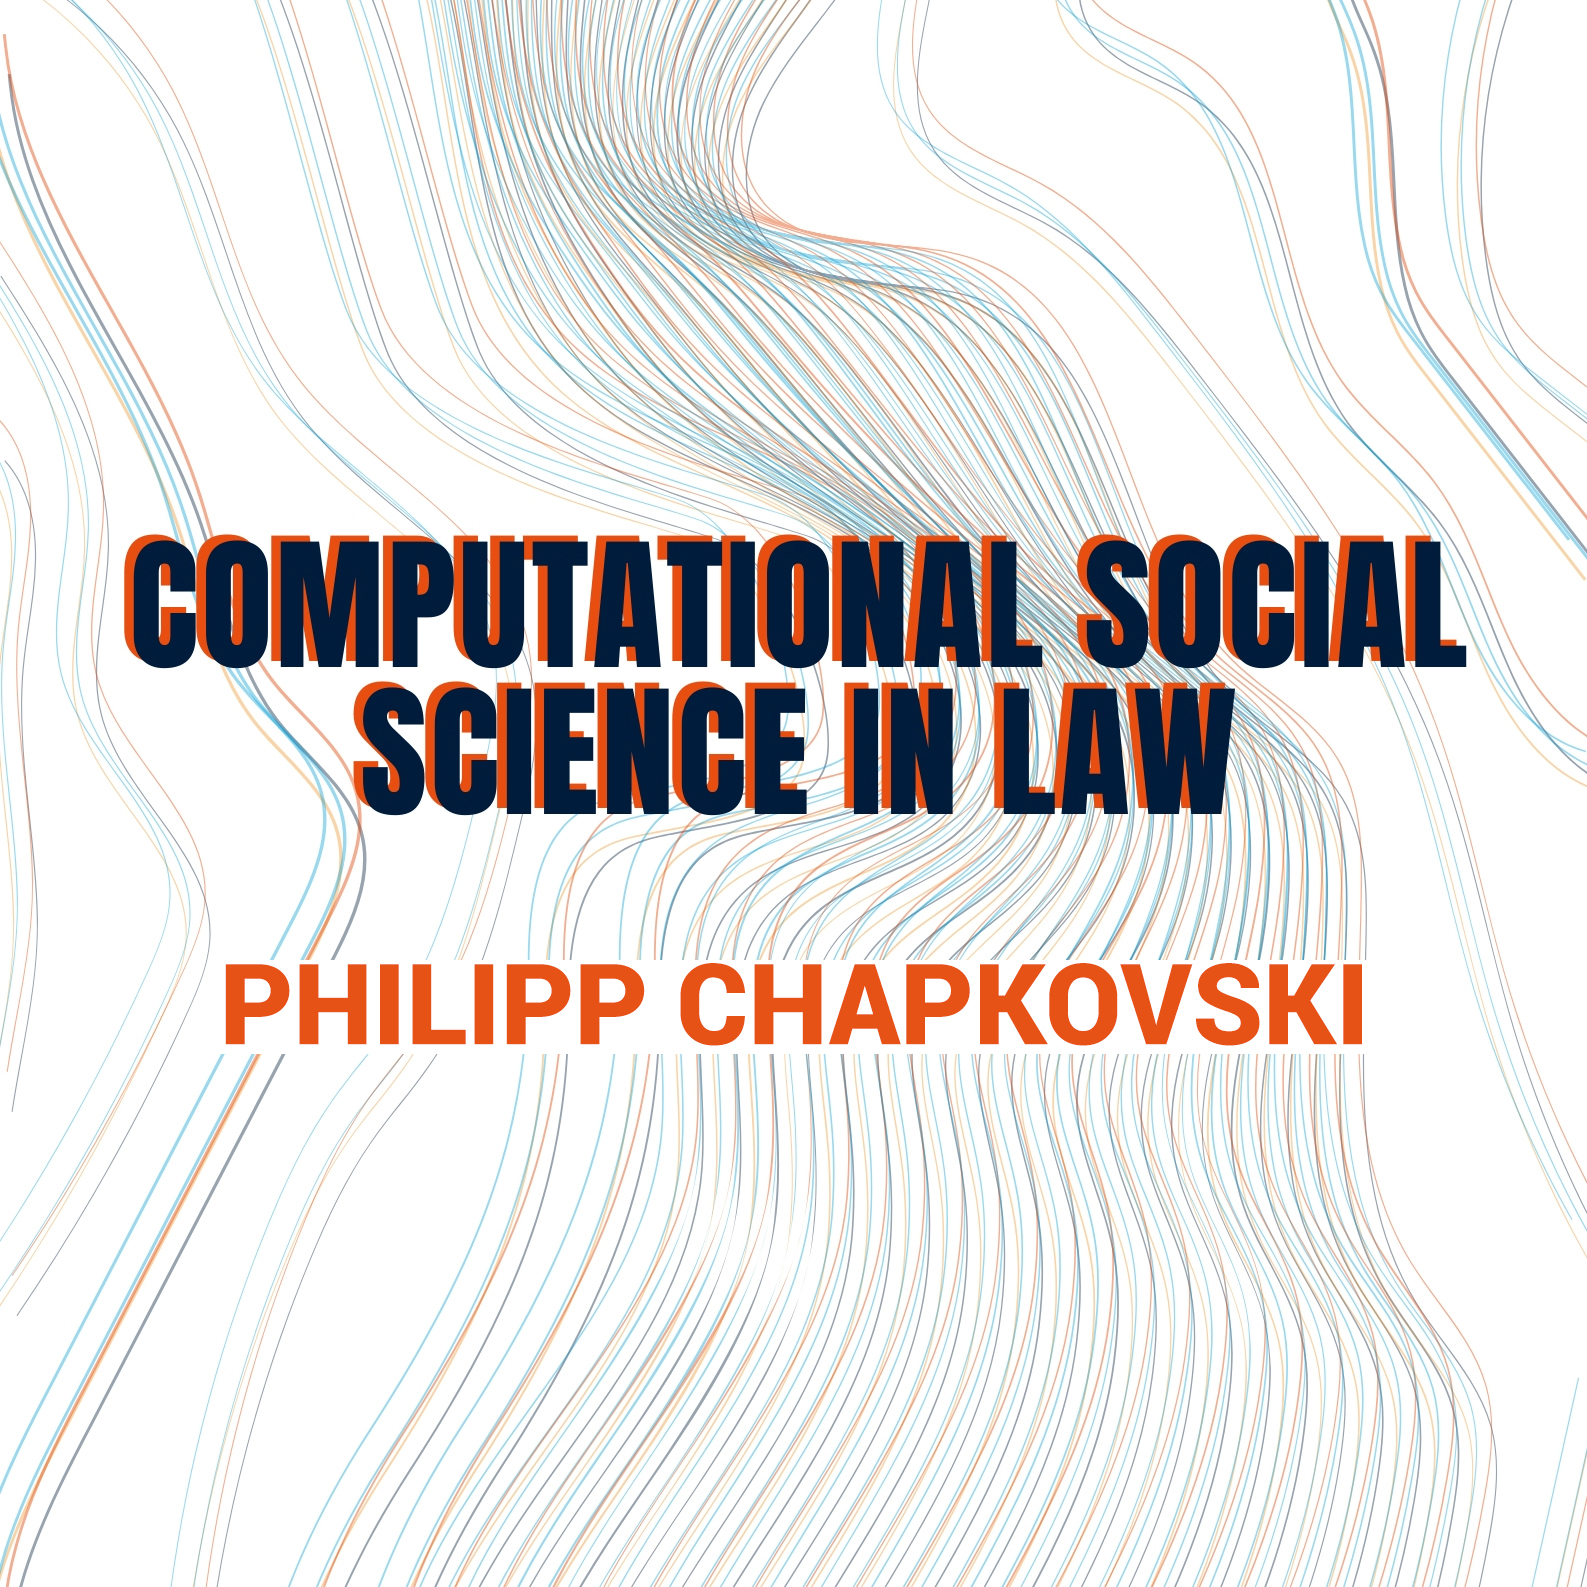 Image of Philipp Chapkovski